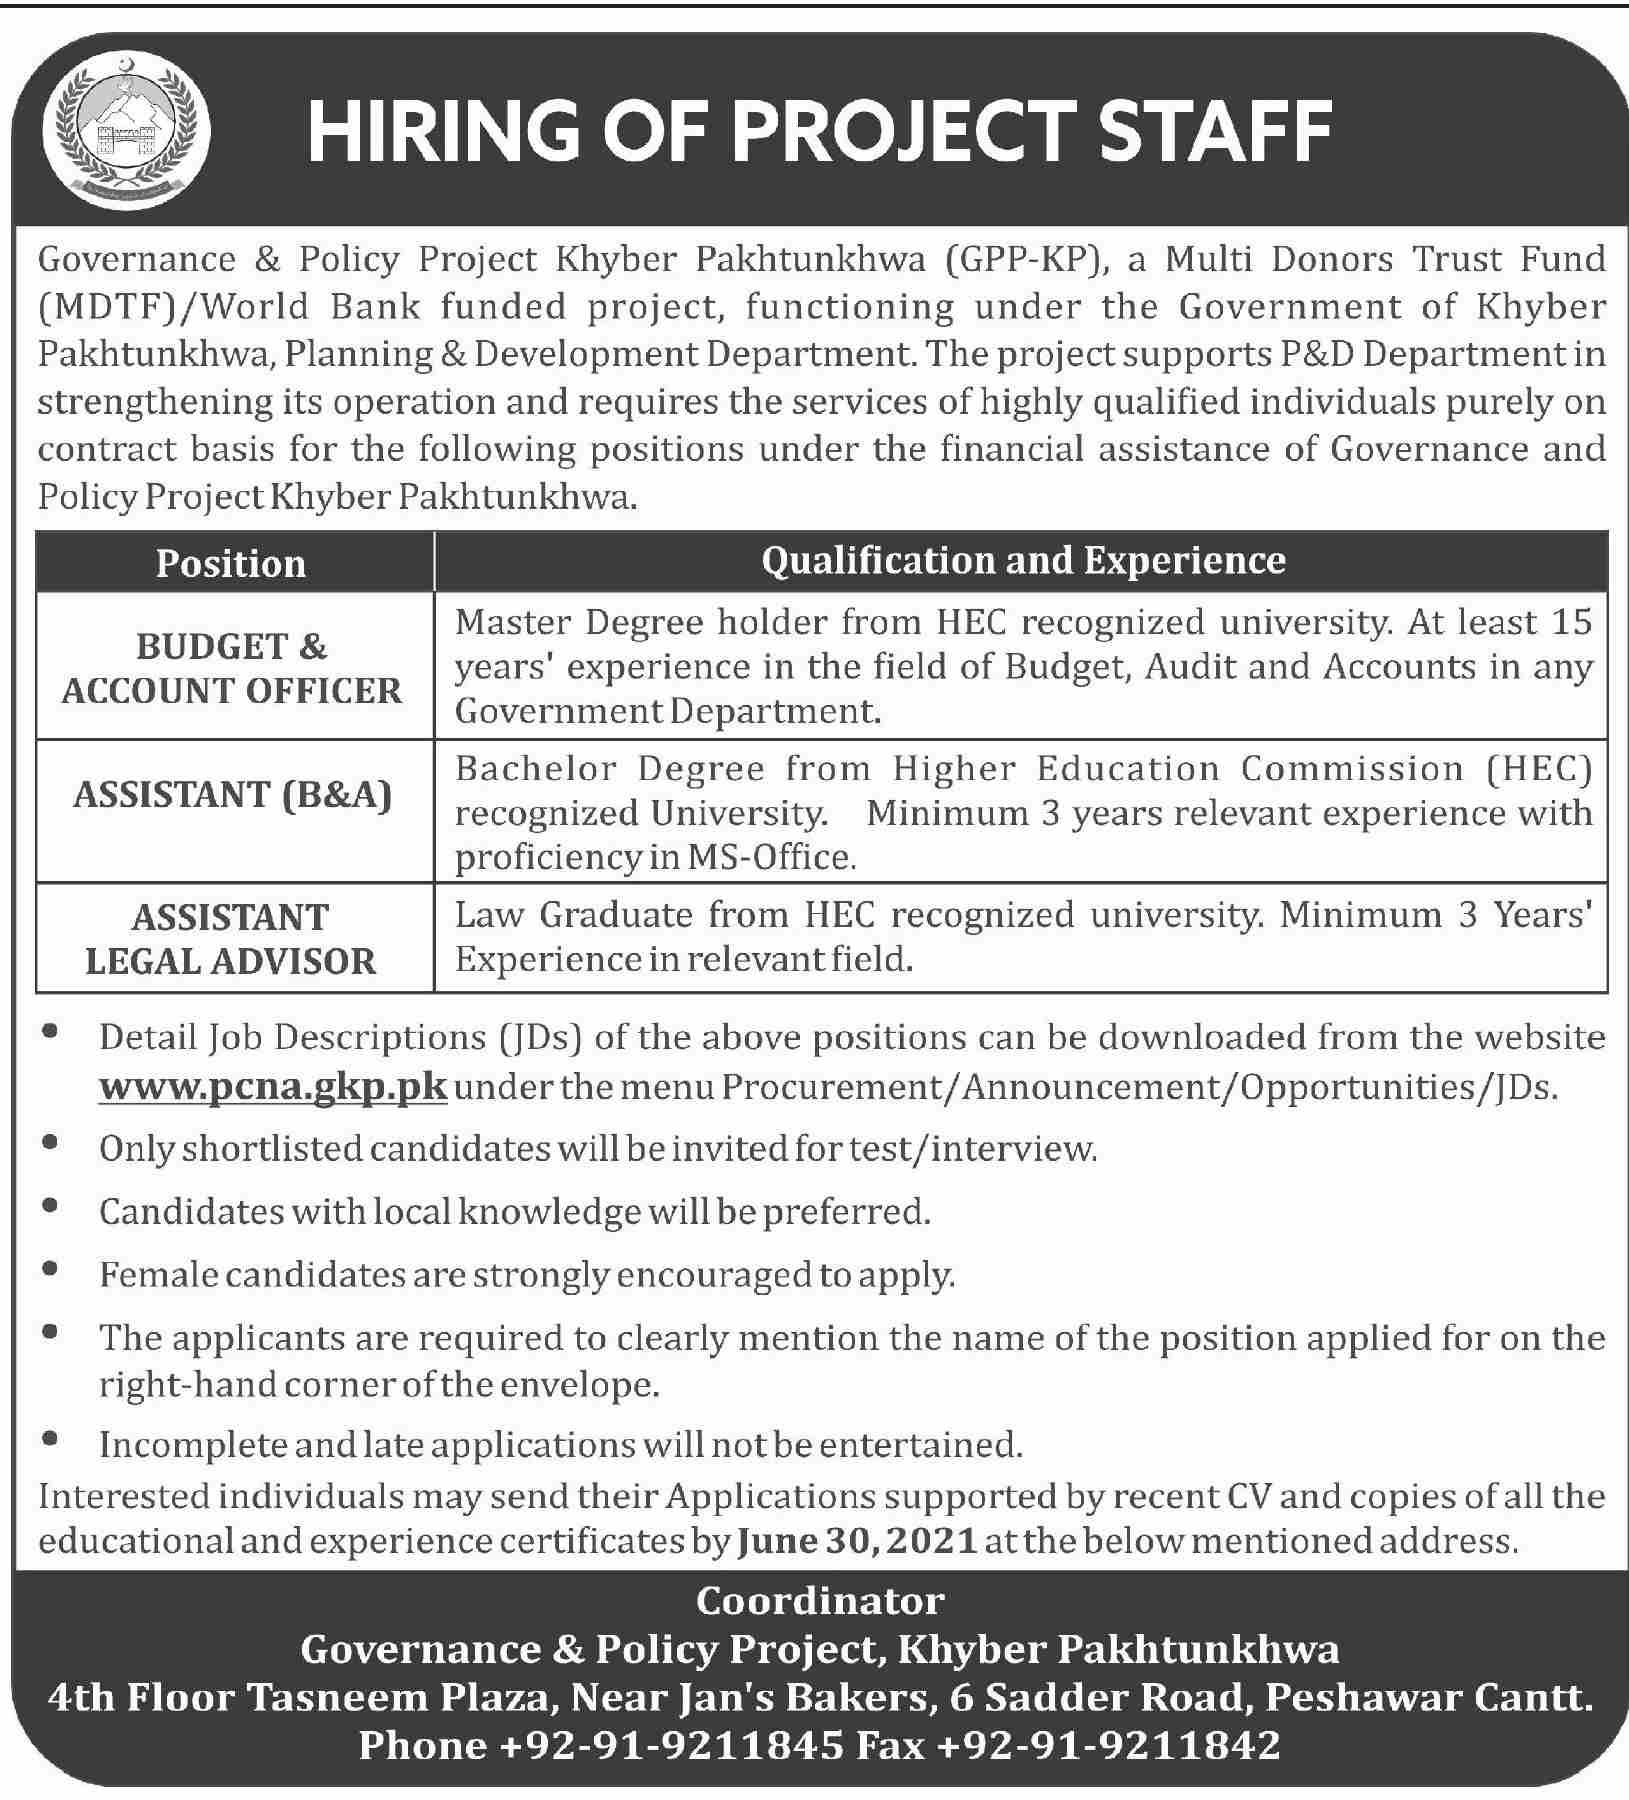 KPK Governance and Policy Project Jobs June 2021 for Budget and Account Officer